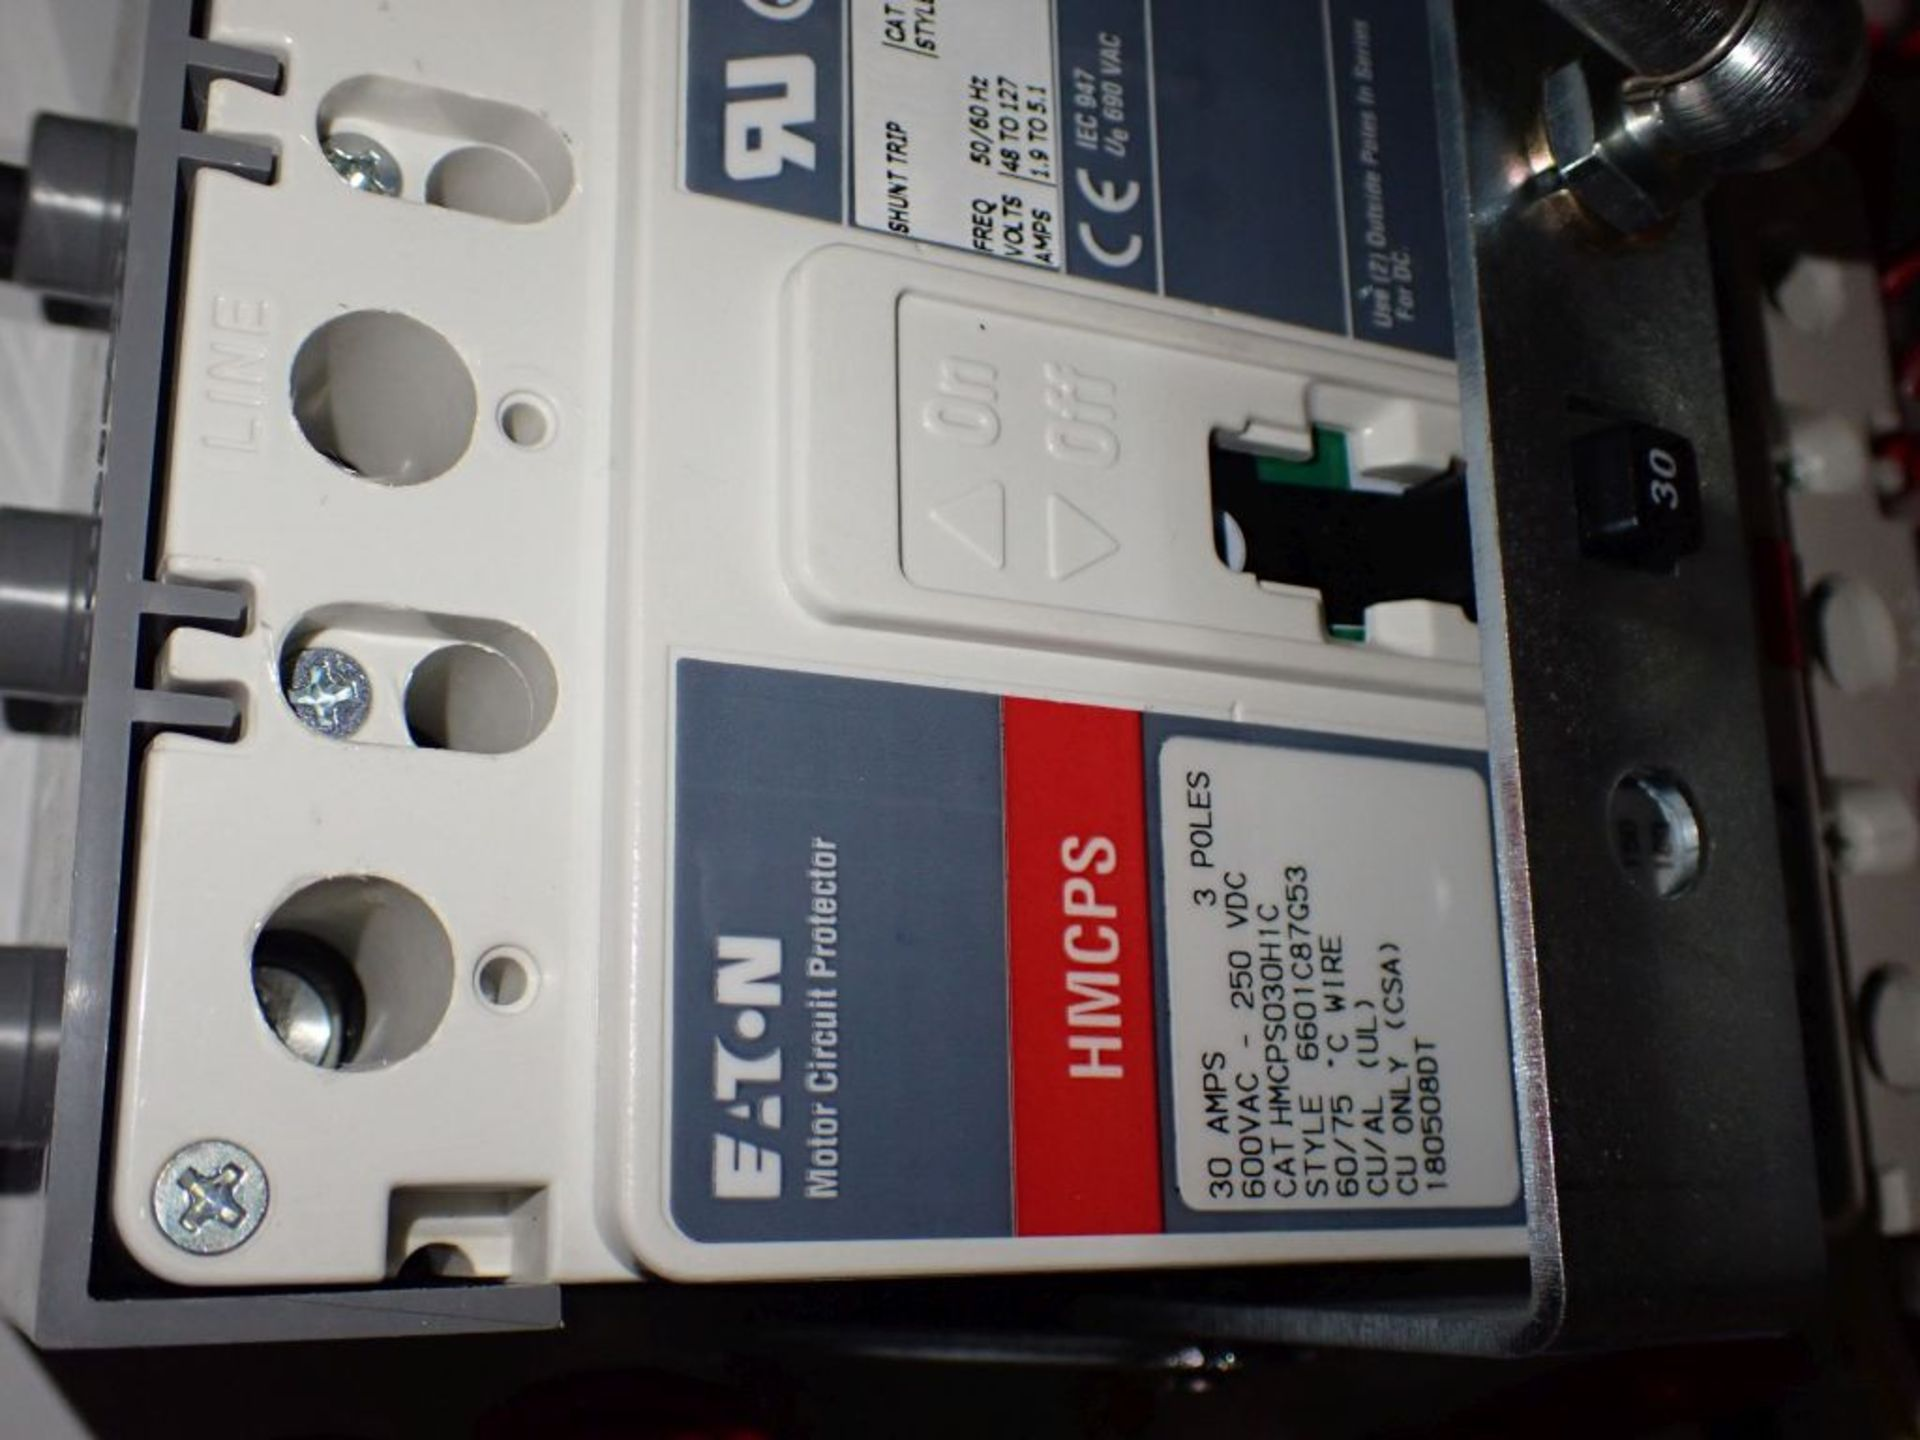 Eaton Freedom 2100 Series Motor Control Center | (11) F206-30A-10HP; (5) F206-15A-10HP; (1) SVX900- - Image 23 of 102